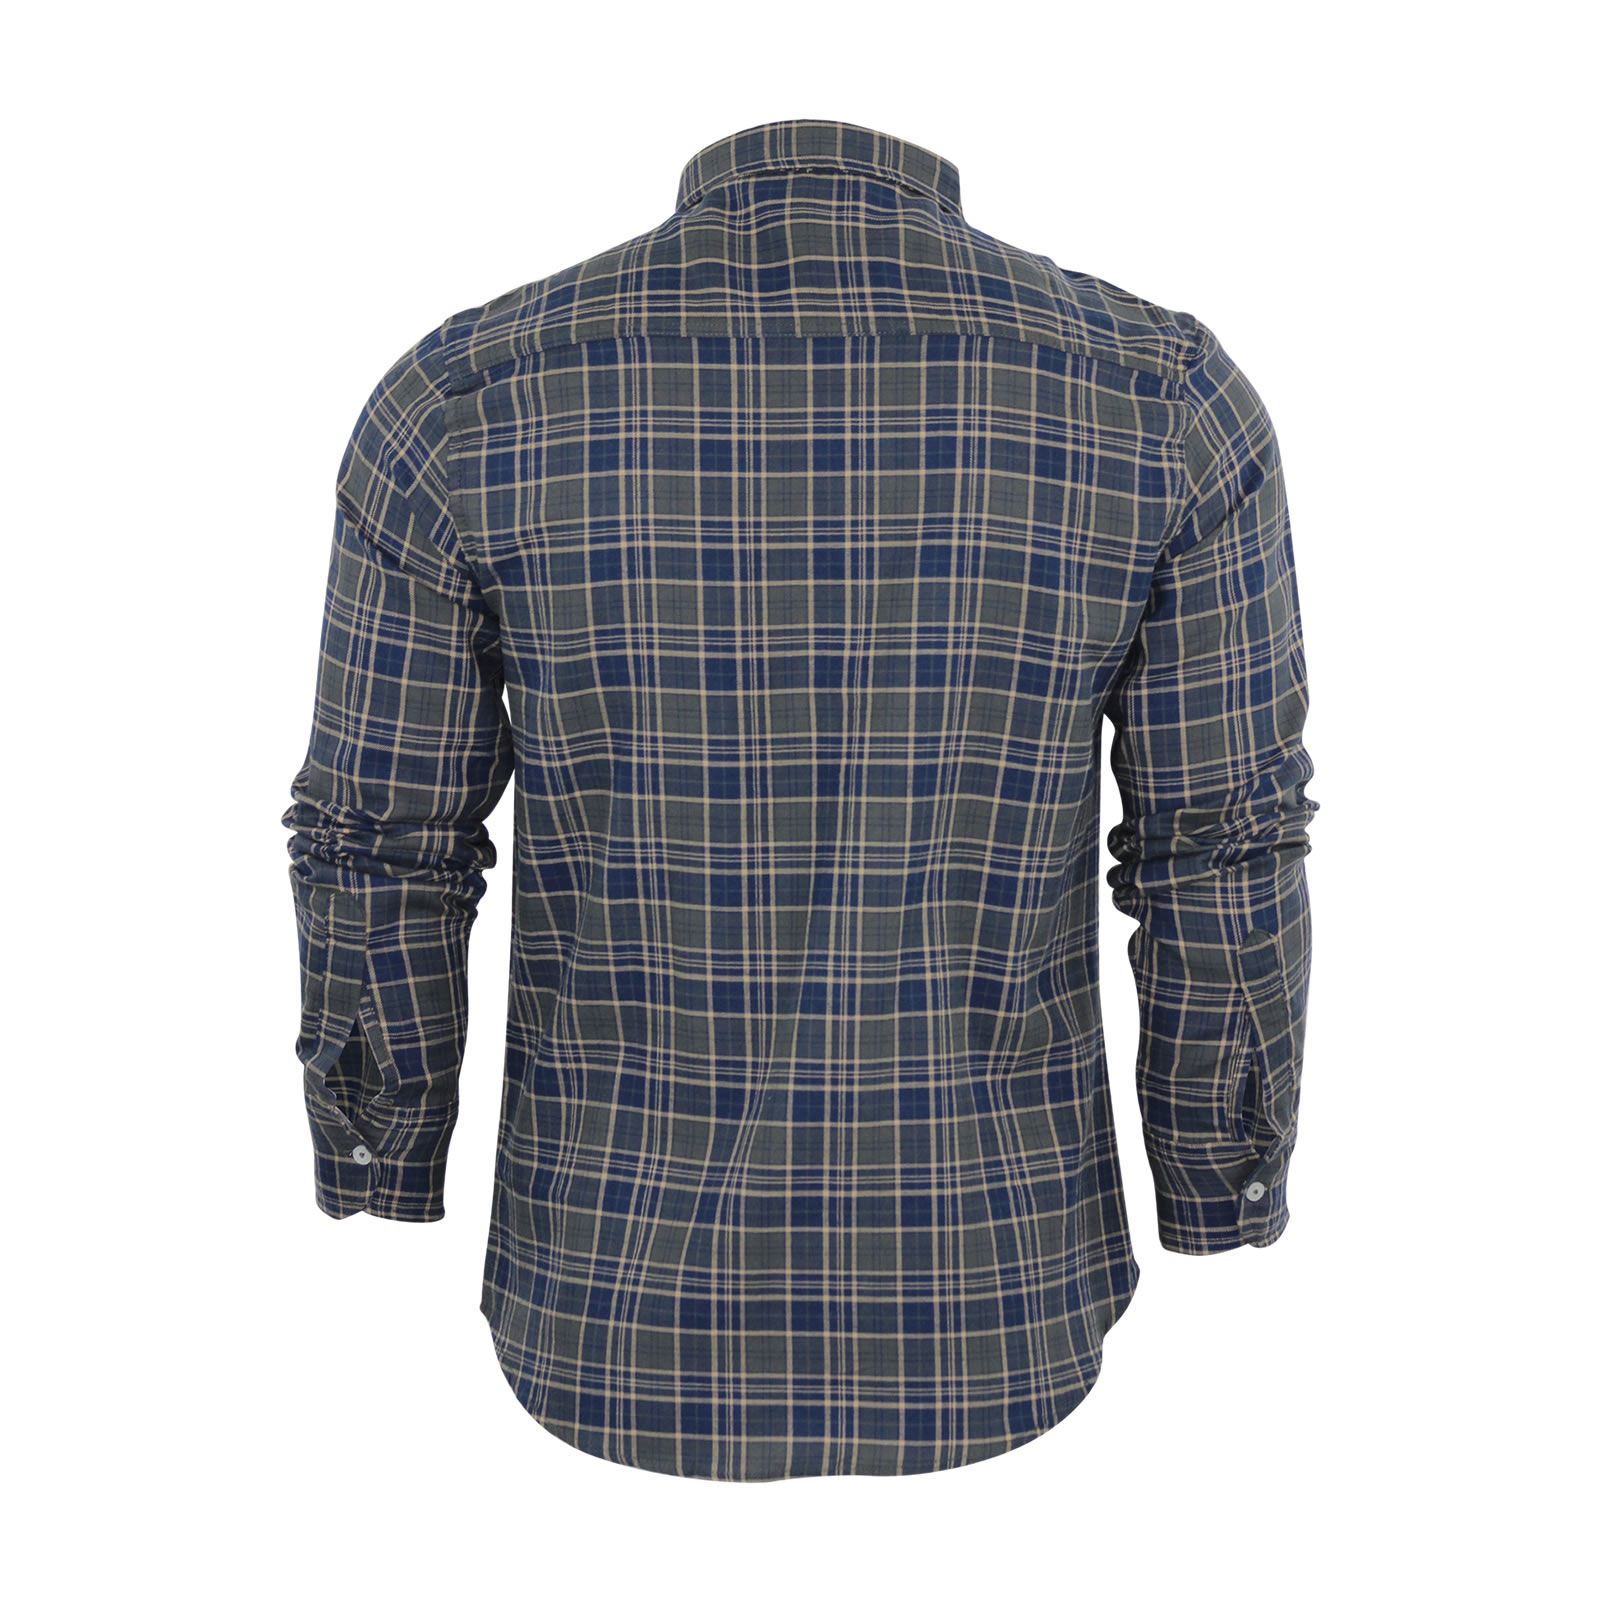 Mens-Check-Shirt-Brave-Soul-Flannel-Brushed-Cotton-Long-Sleeve-Casual-Top thumbnail 63